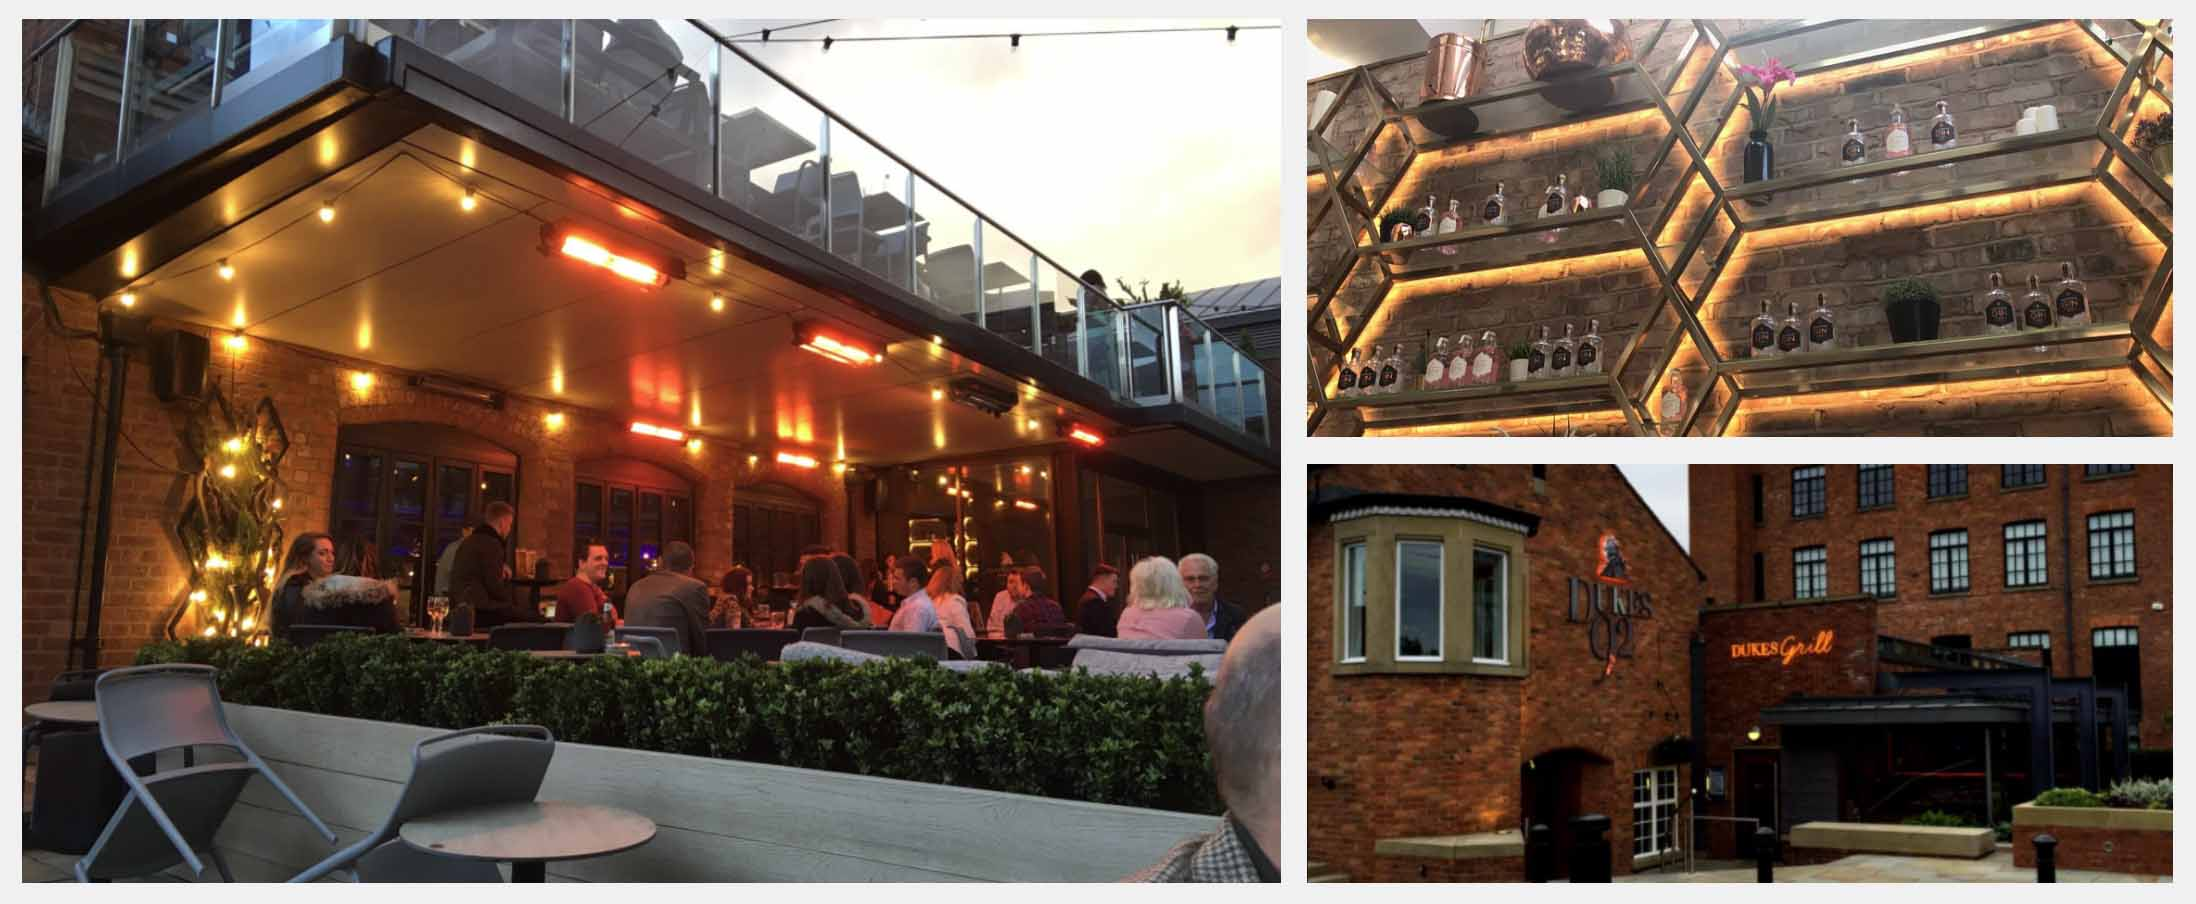 Best Beer Gardens in Manchester - Dukes 92